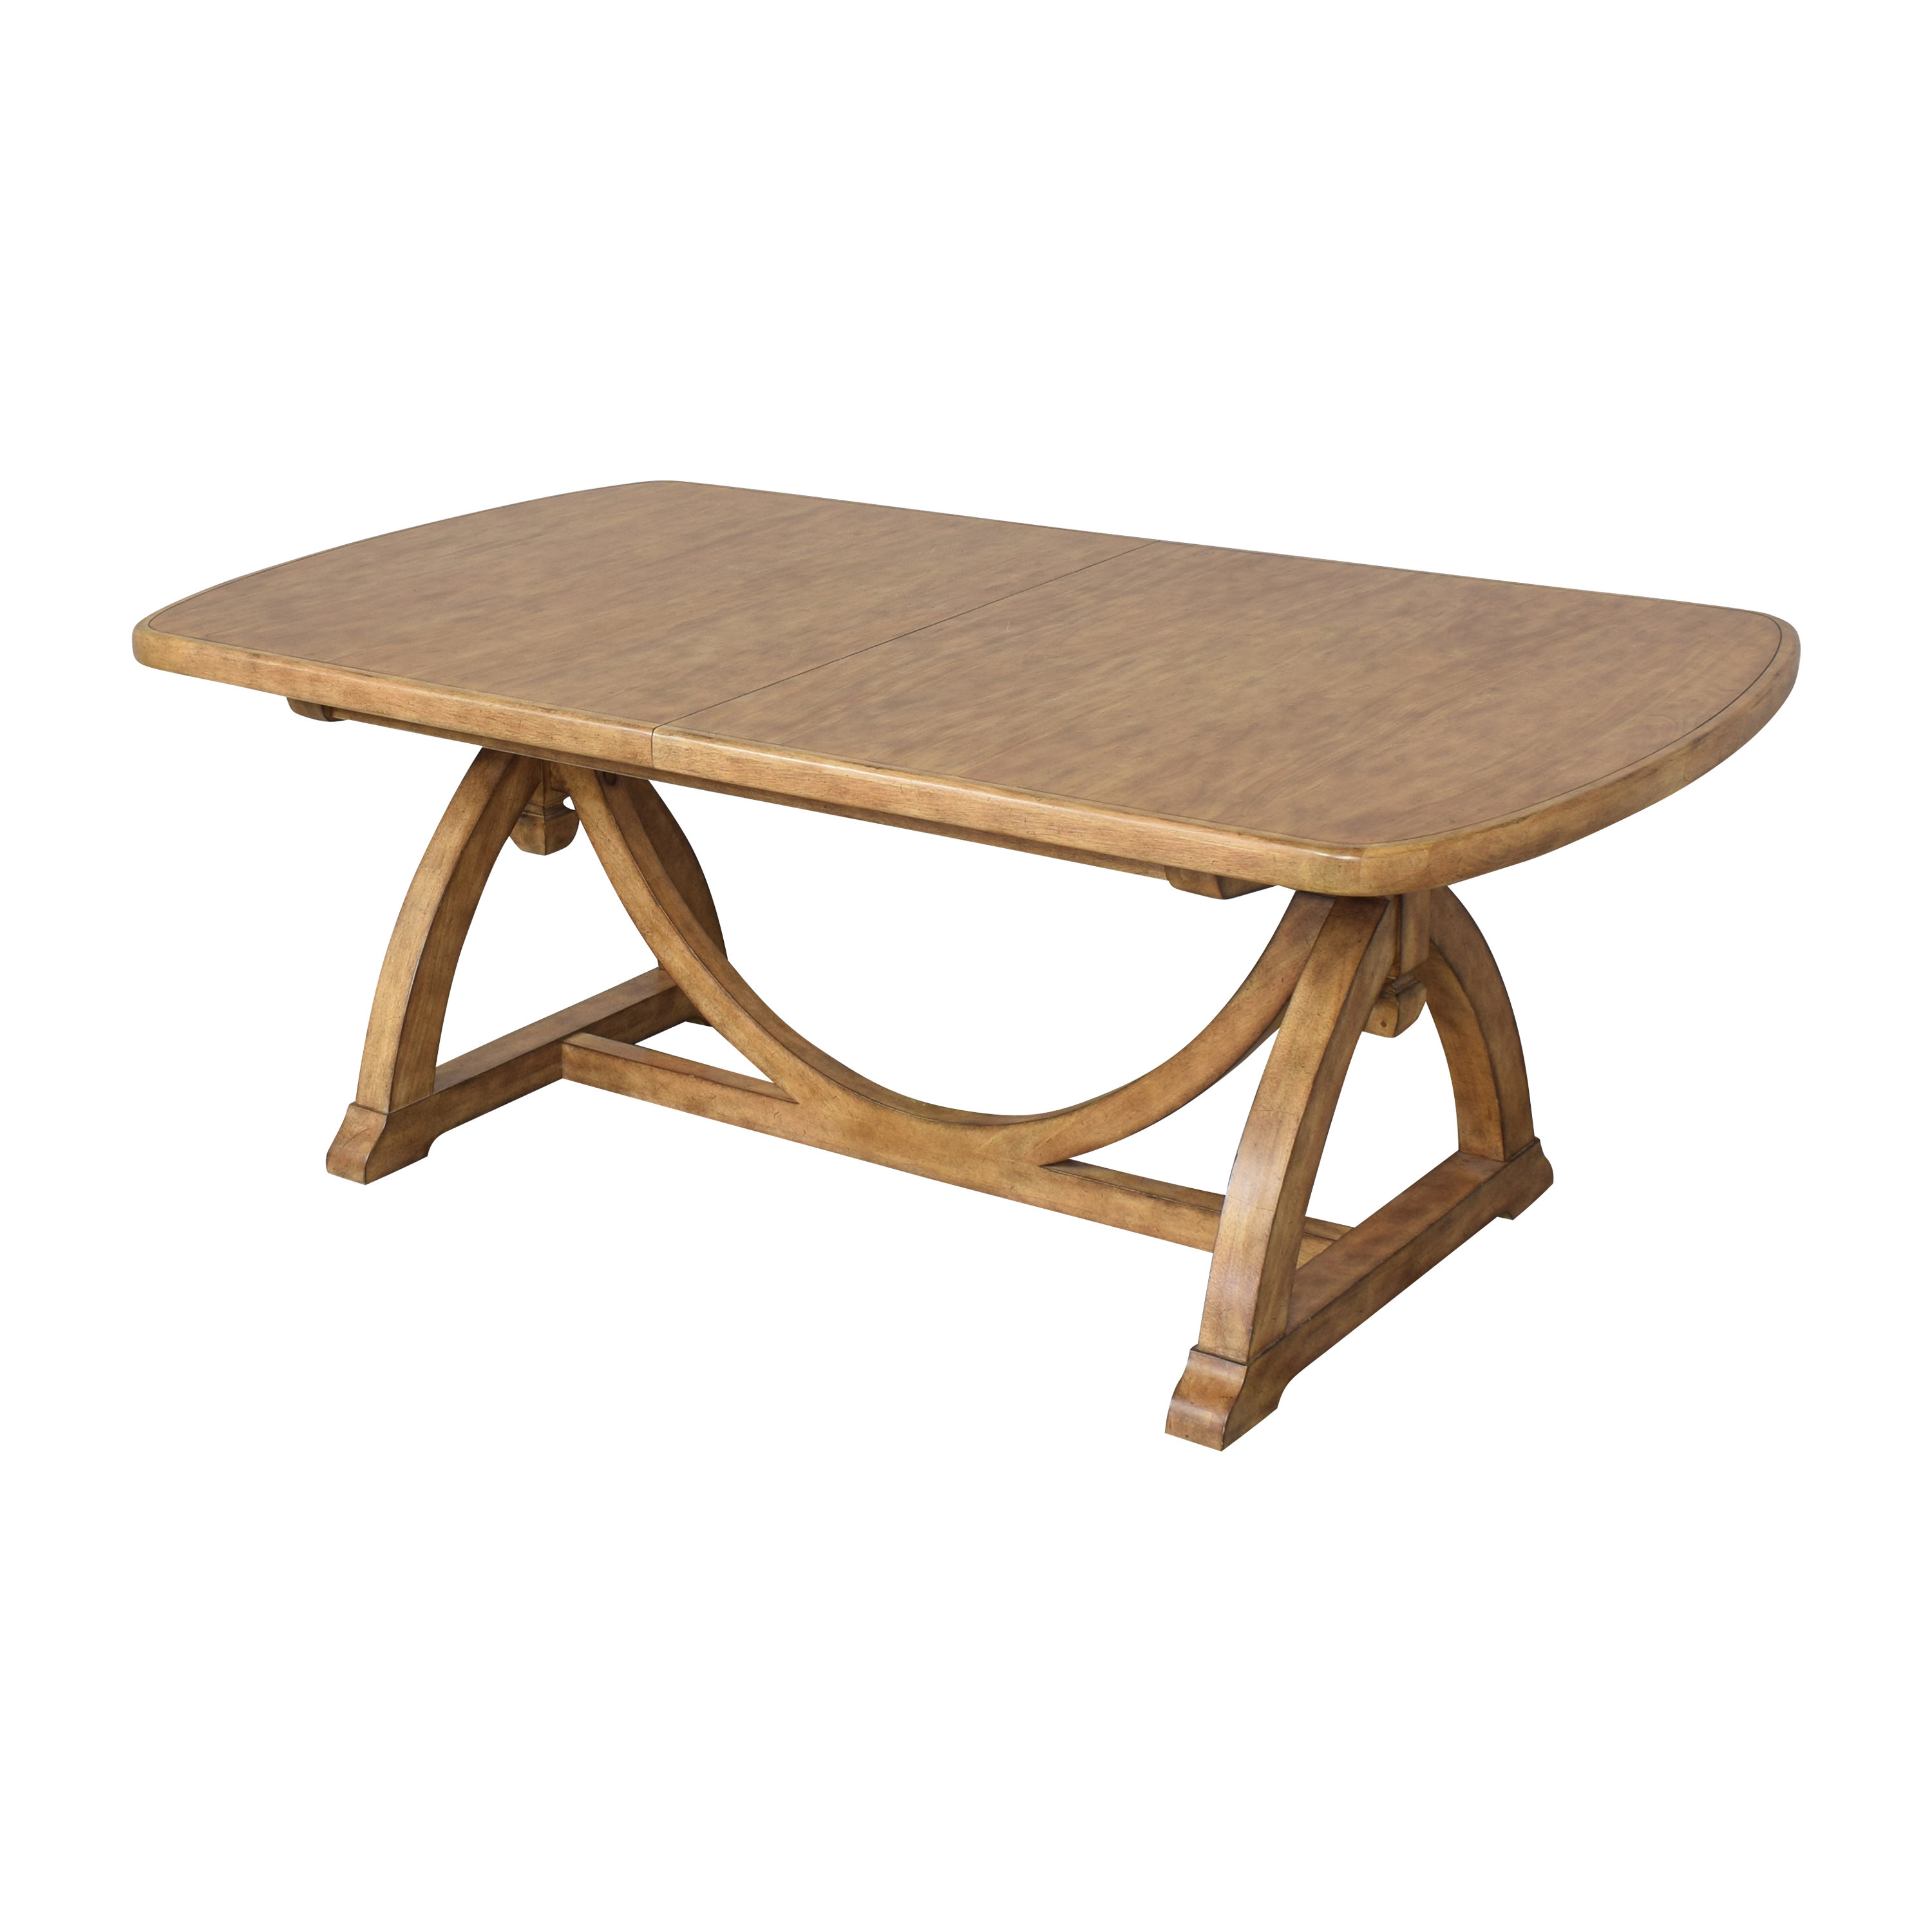 Thomasville Thomasville Reinventions Pacific Trestle Dining Table ct